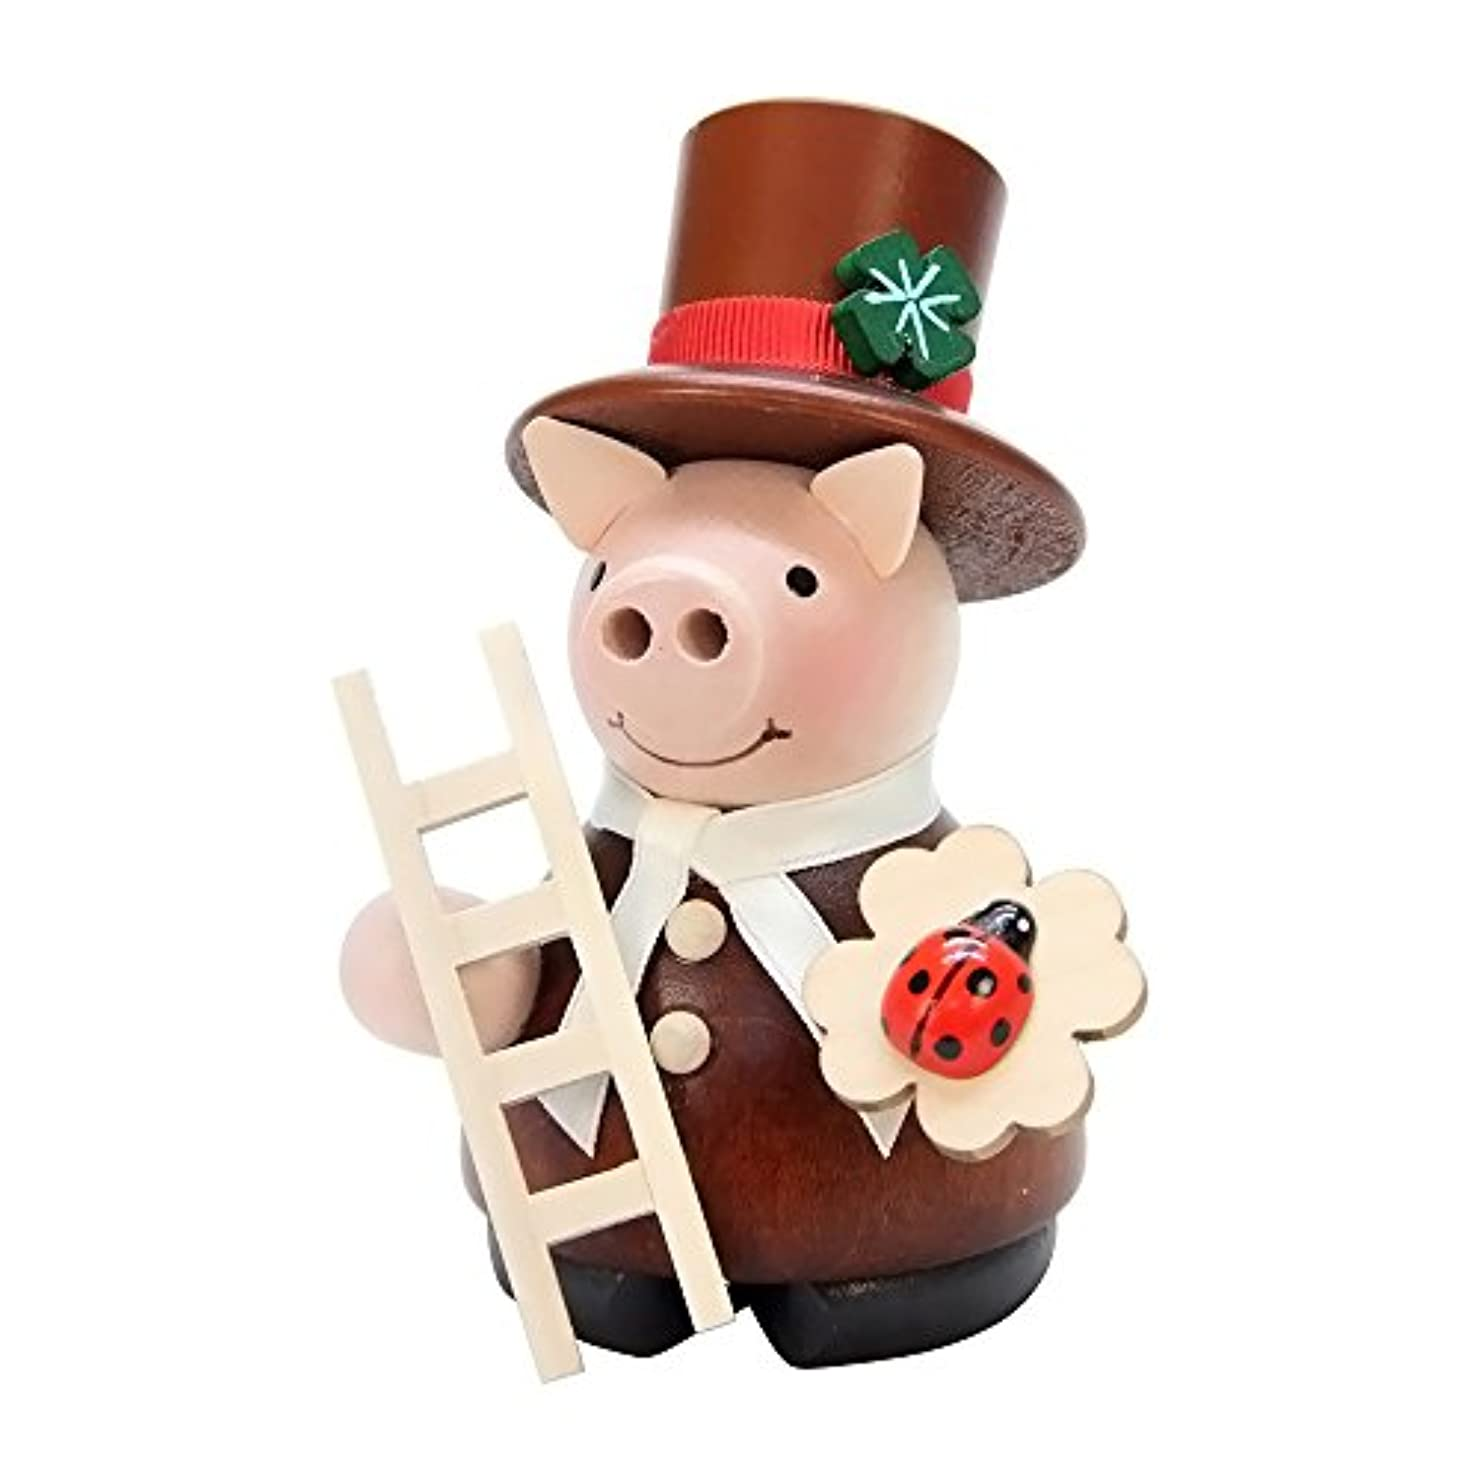 スナック機械的に日没(One size, Multi) - Christian Ulbricht Incense Burner - Lucky Pig Chimney Sweep - 4.5H x 3W x 3D